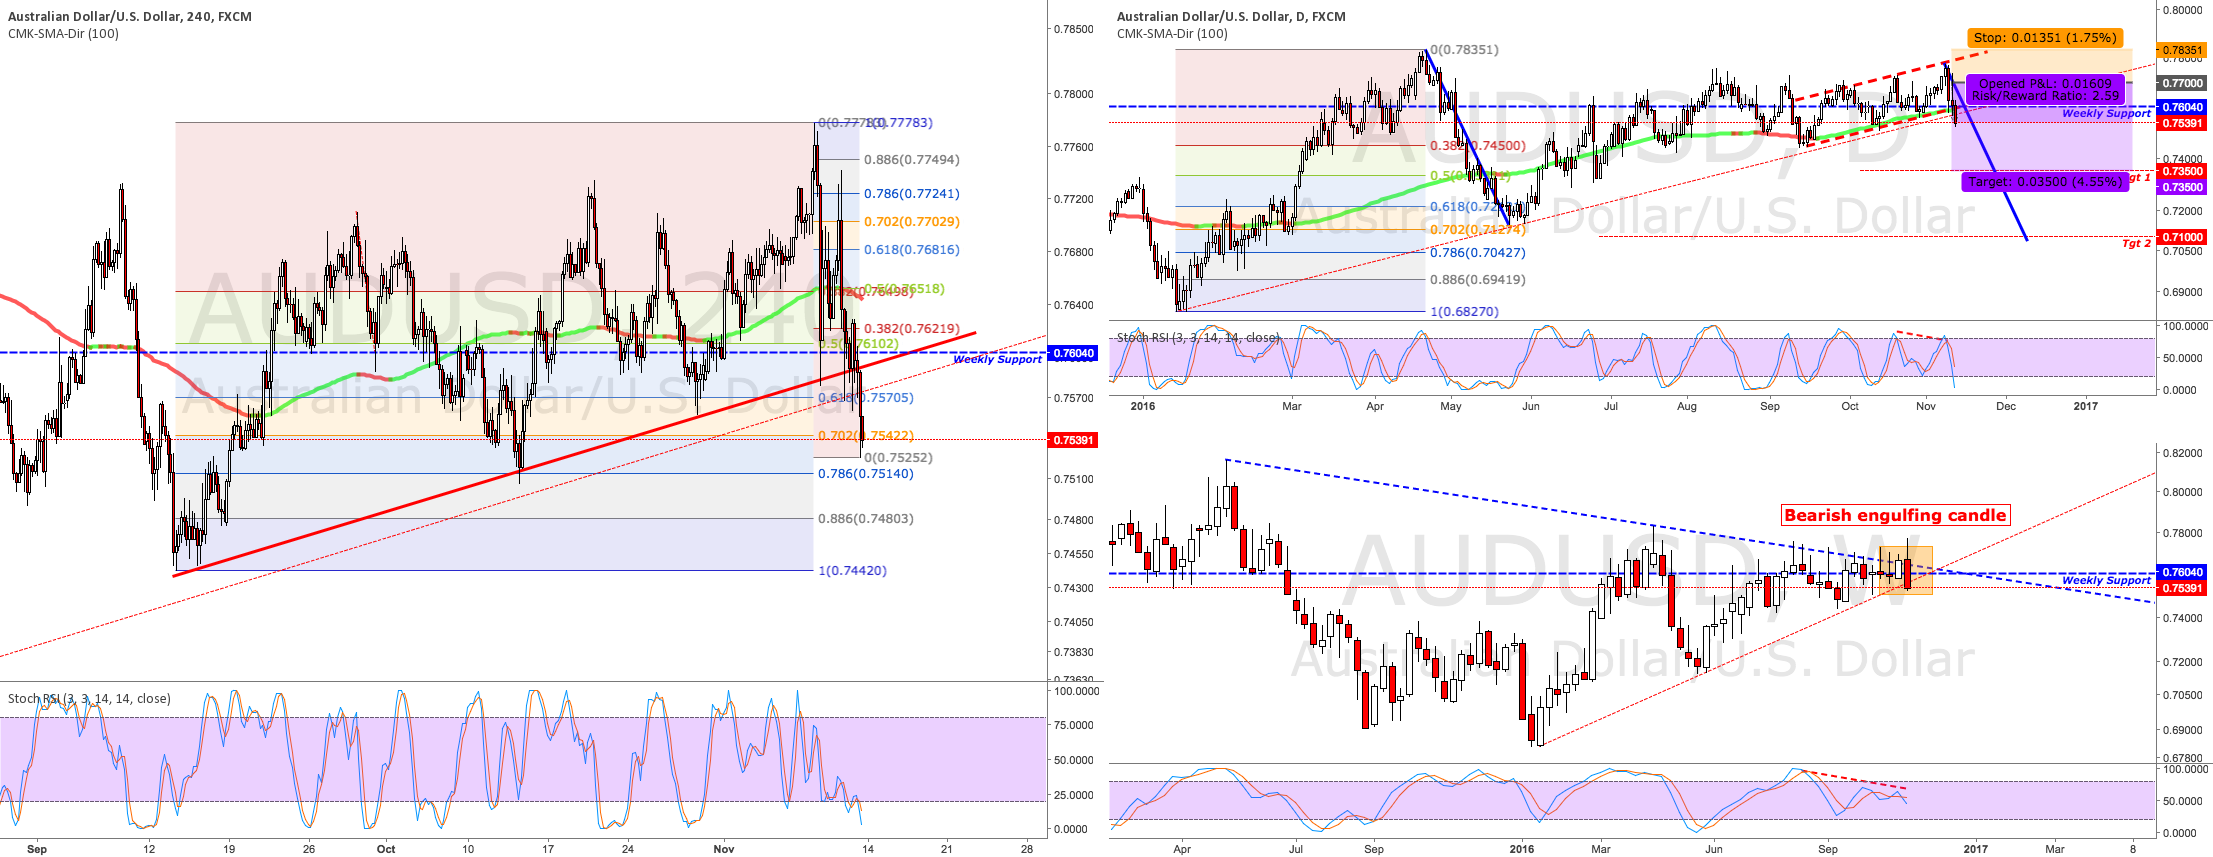 Shorting the Aussie after key levels taken out